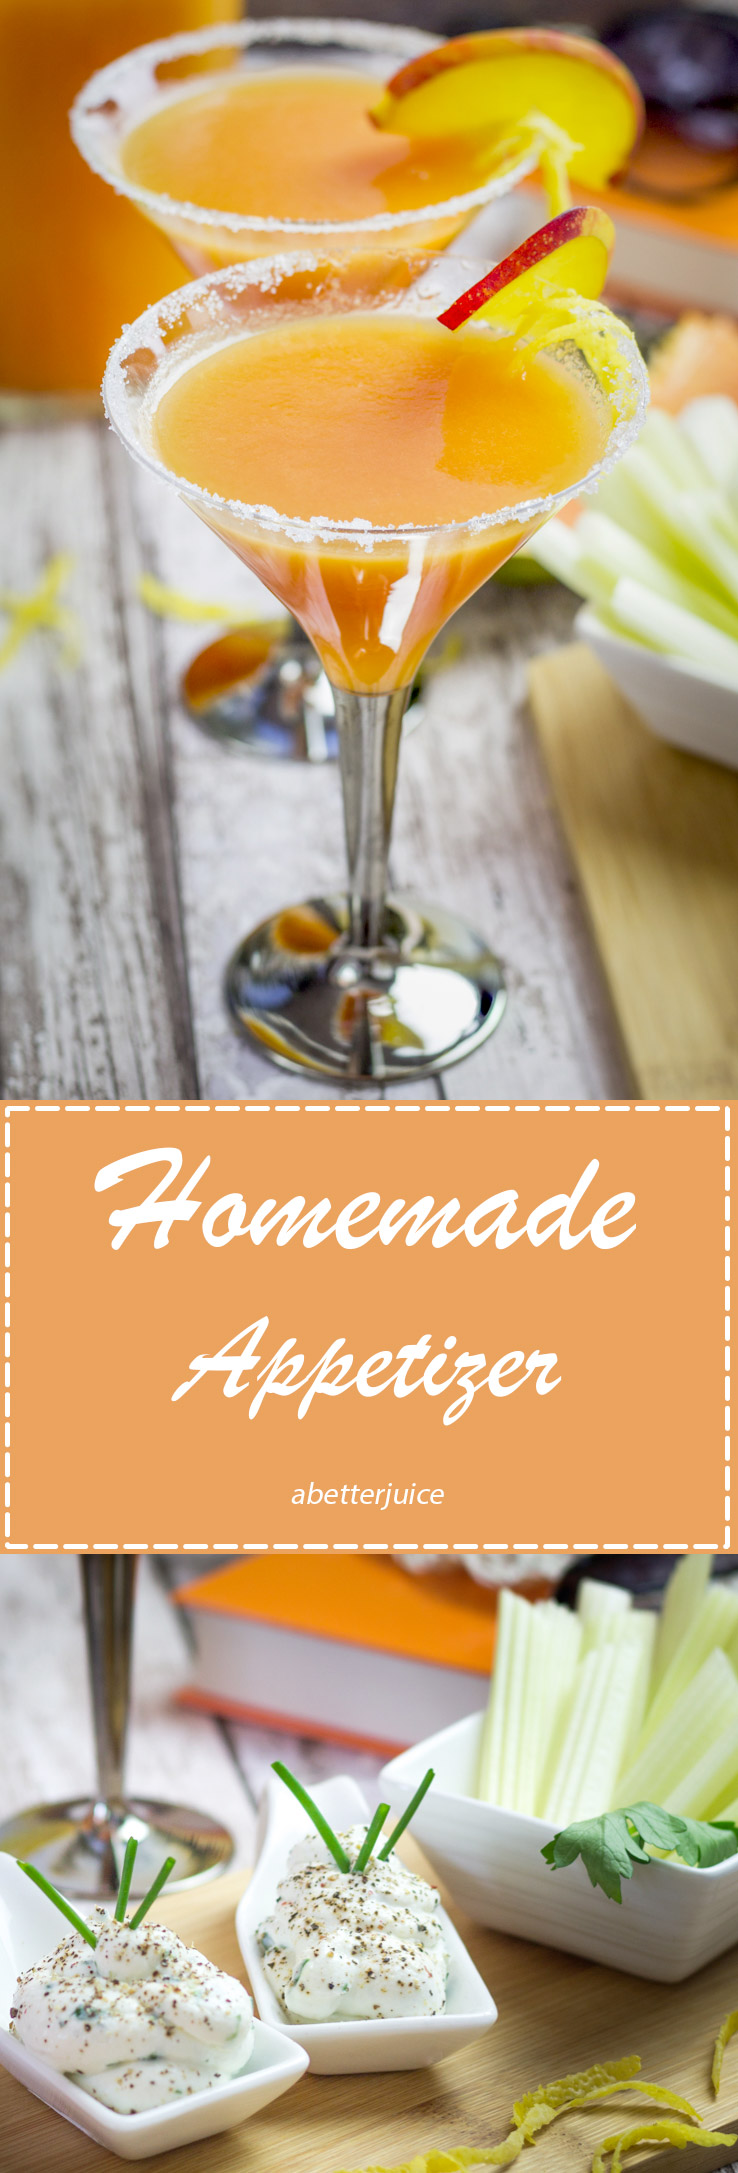 Homemade Appetizer 6 Moves Pinterest